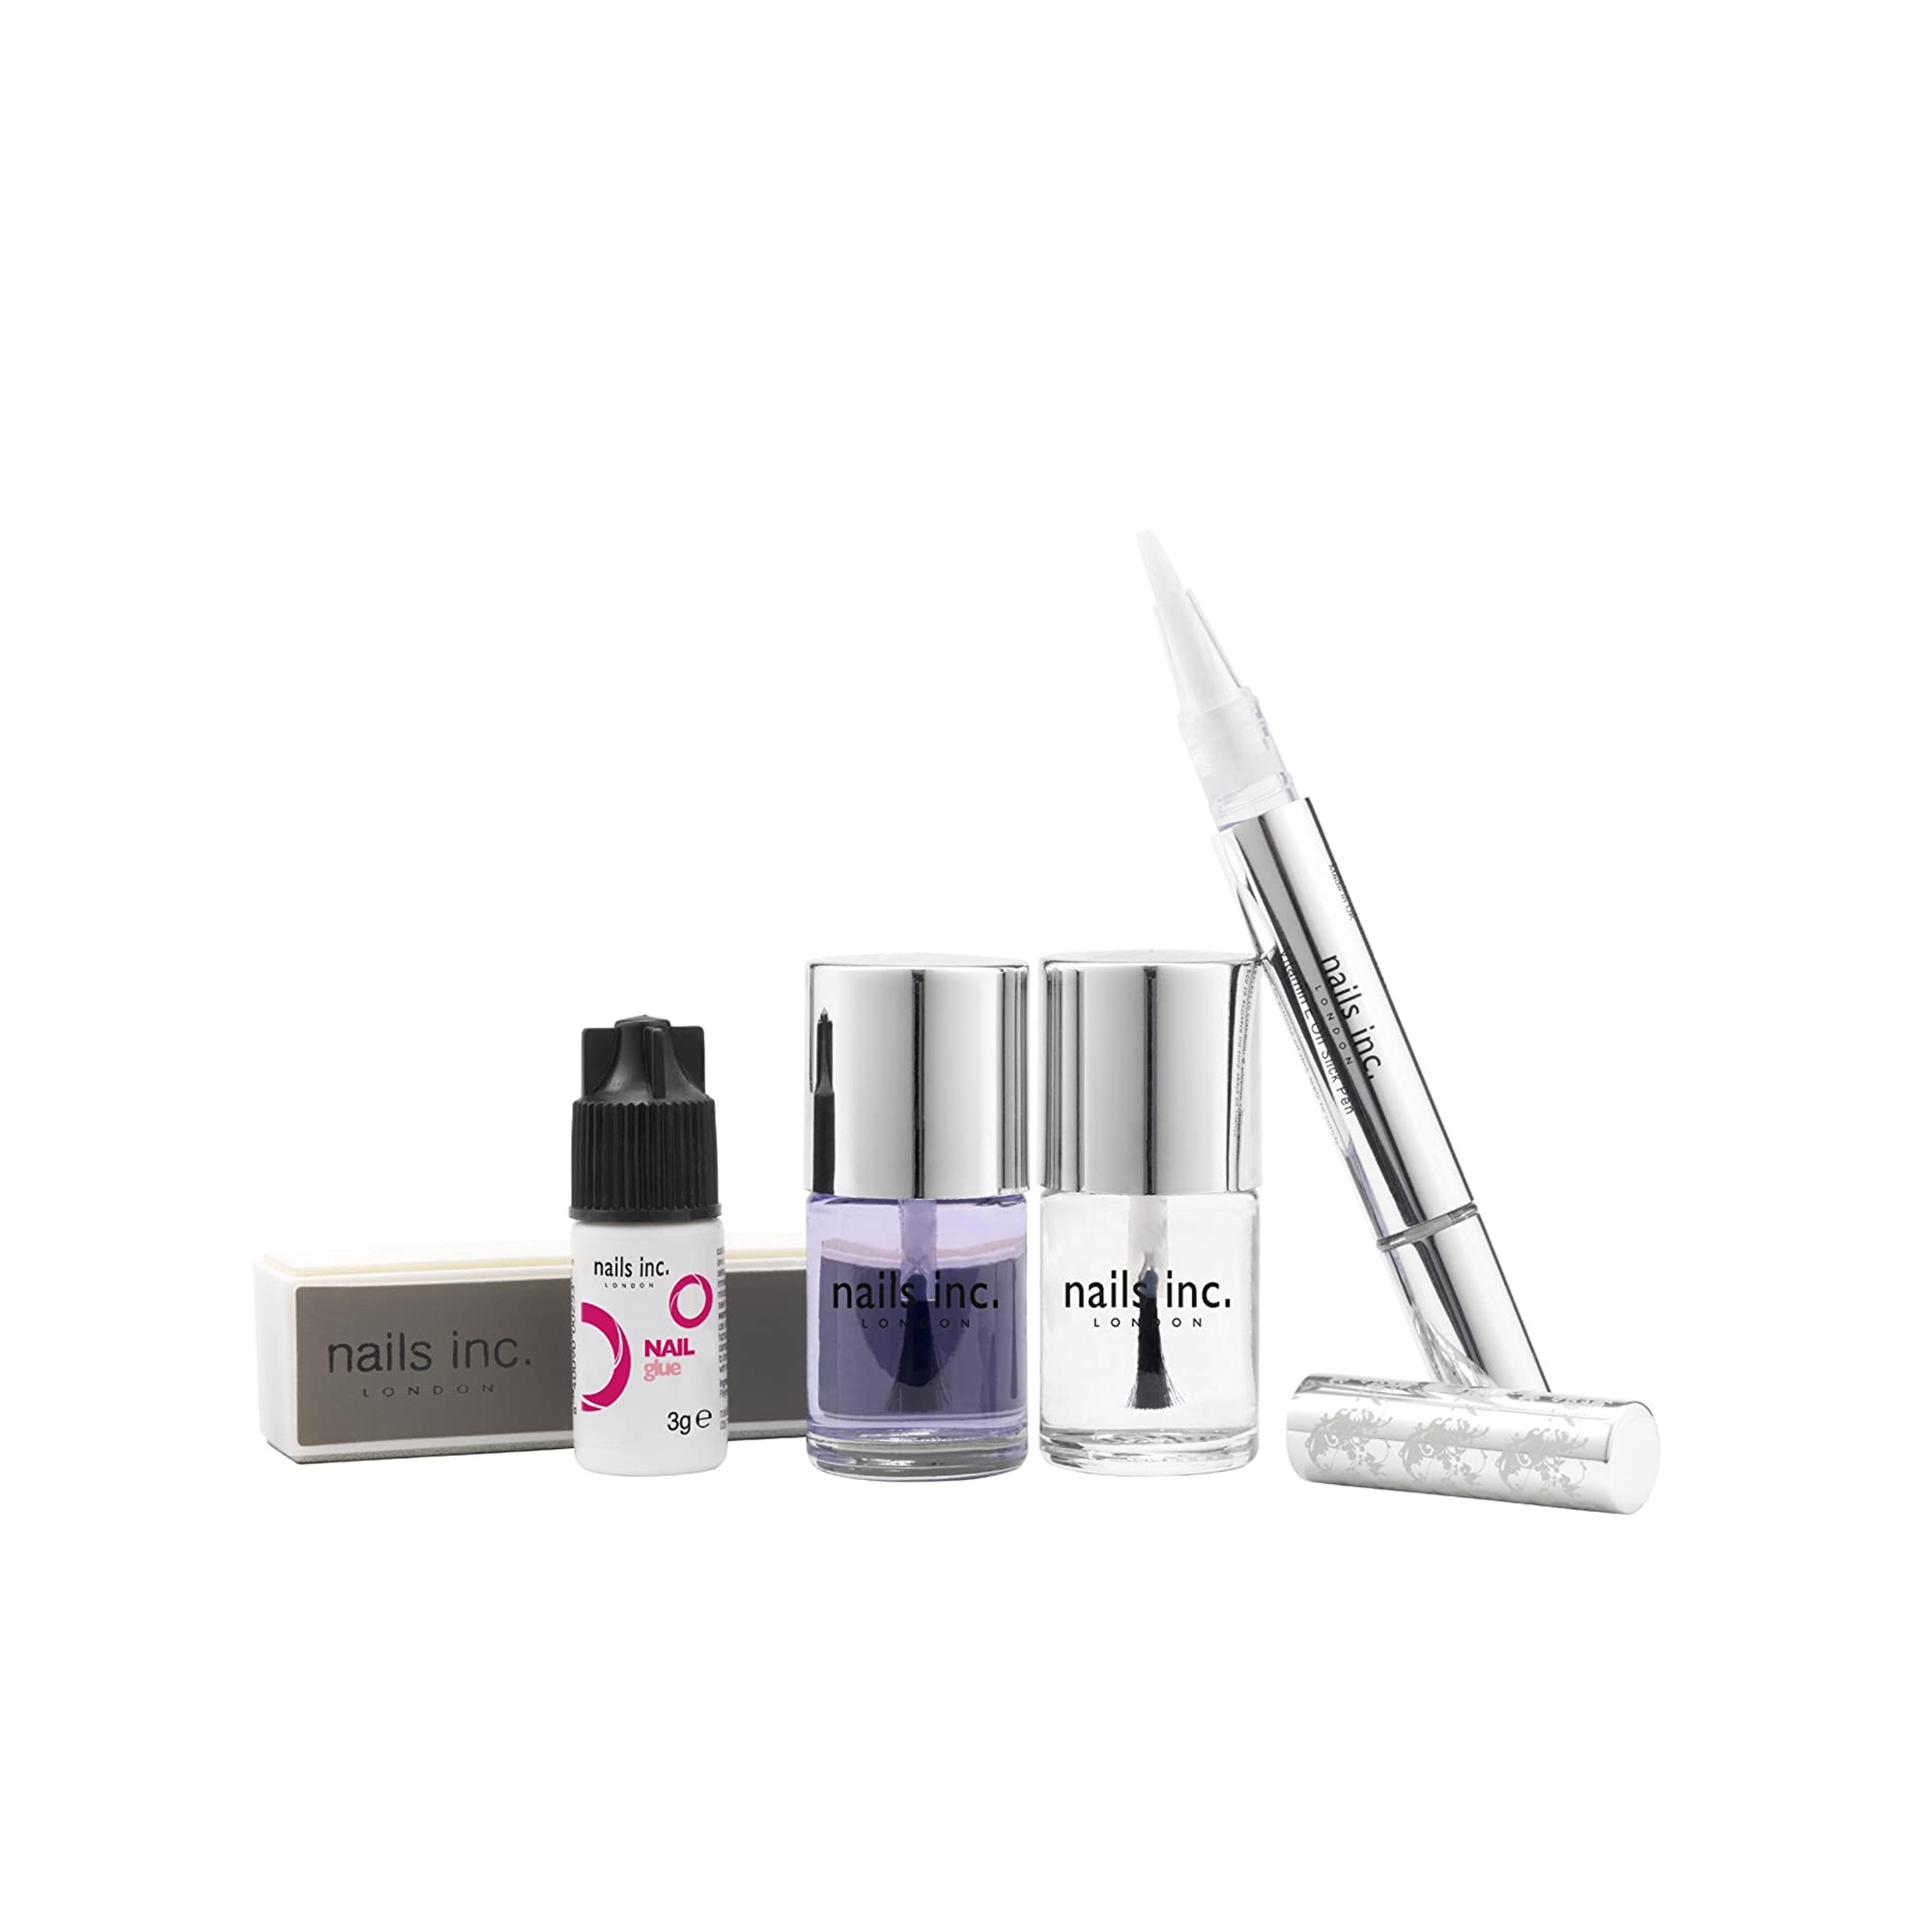 Nails Inc - Treatment Pack for 3 Weeks